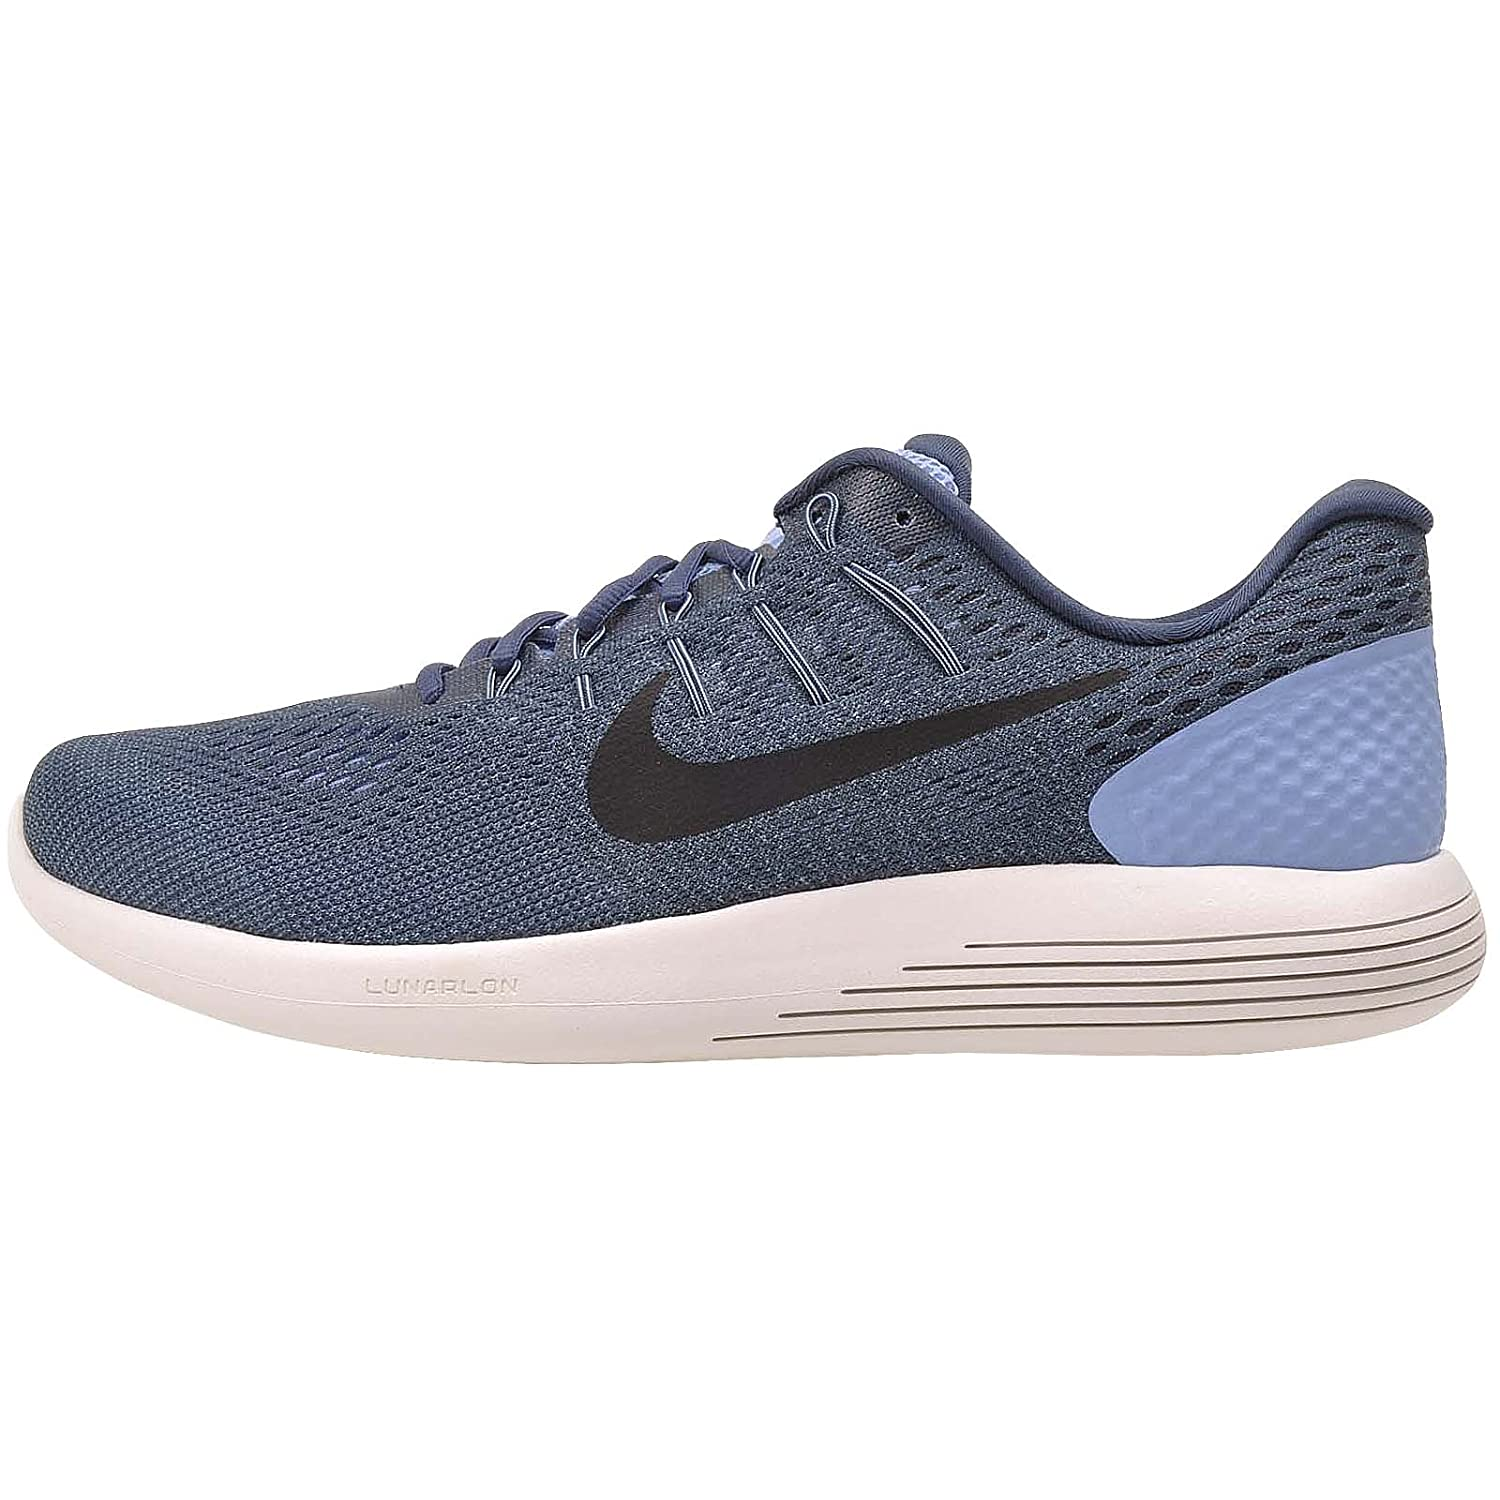 a649d53005ad Nike Men s Lunarglide 8 Running Shoe Light Blue Squadron Blue Ghost  Green Black 11. 5  Buy Online at Low Prices in India - Amazon.in